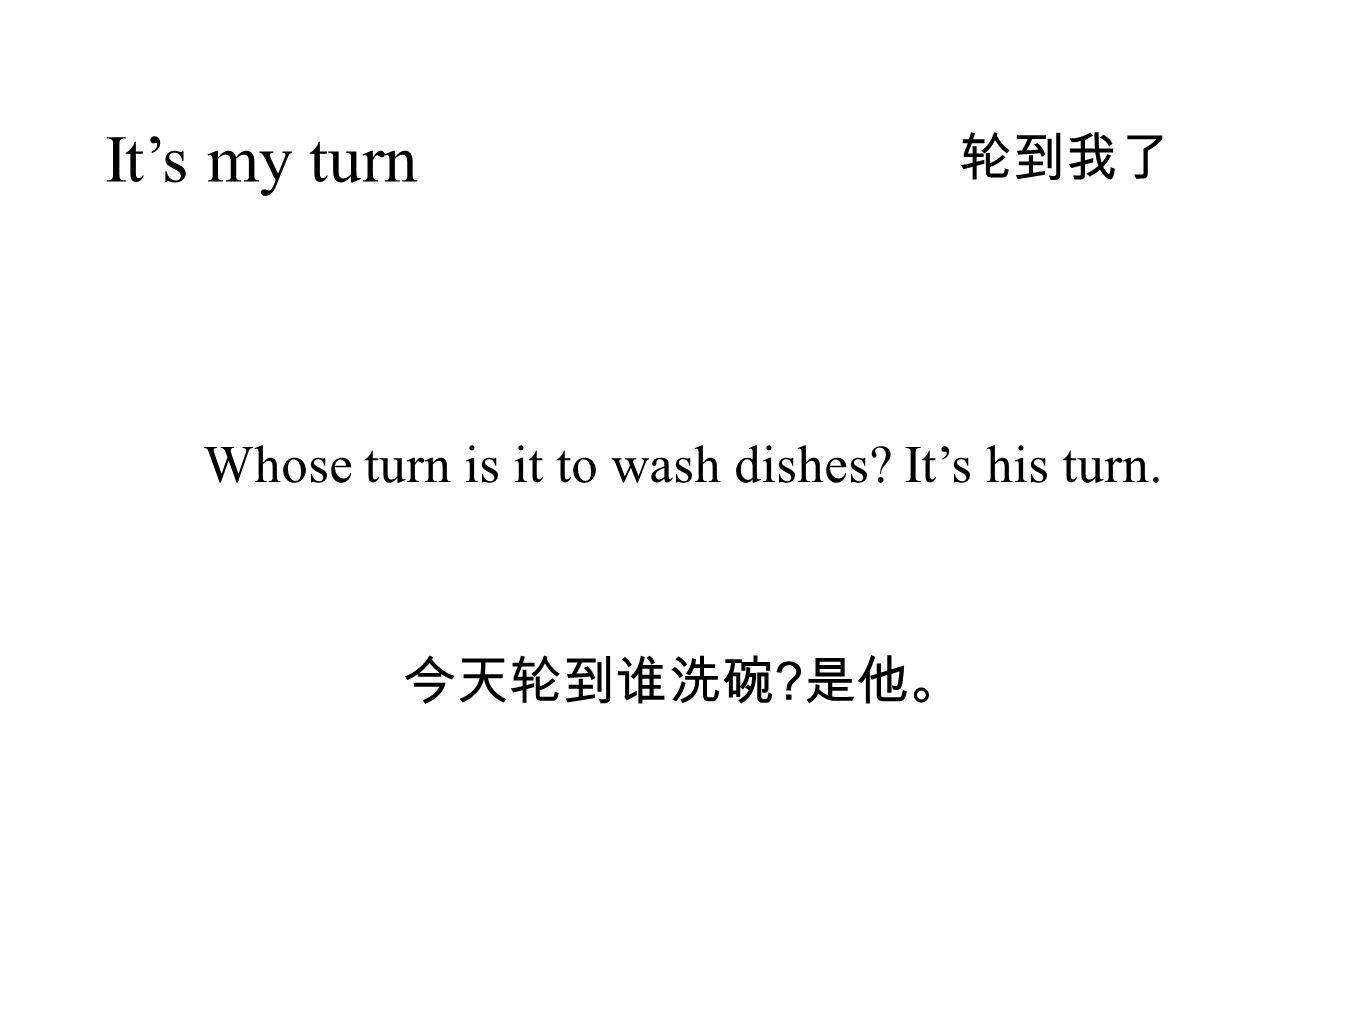 轮到我了 It's my turn 今天轮到谁洗碗 是他。 Whose turn is it to wash dishes It's his turn.